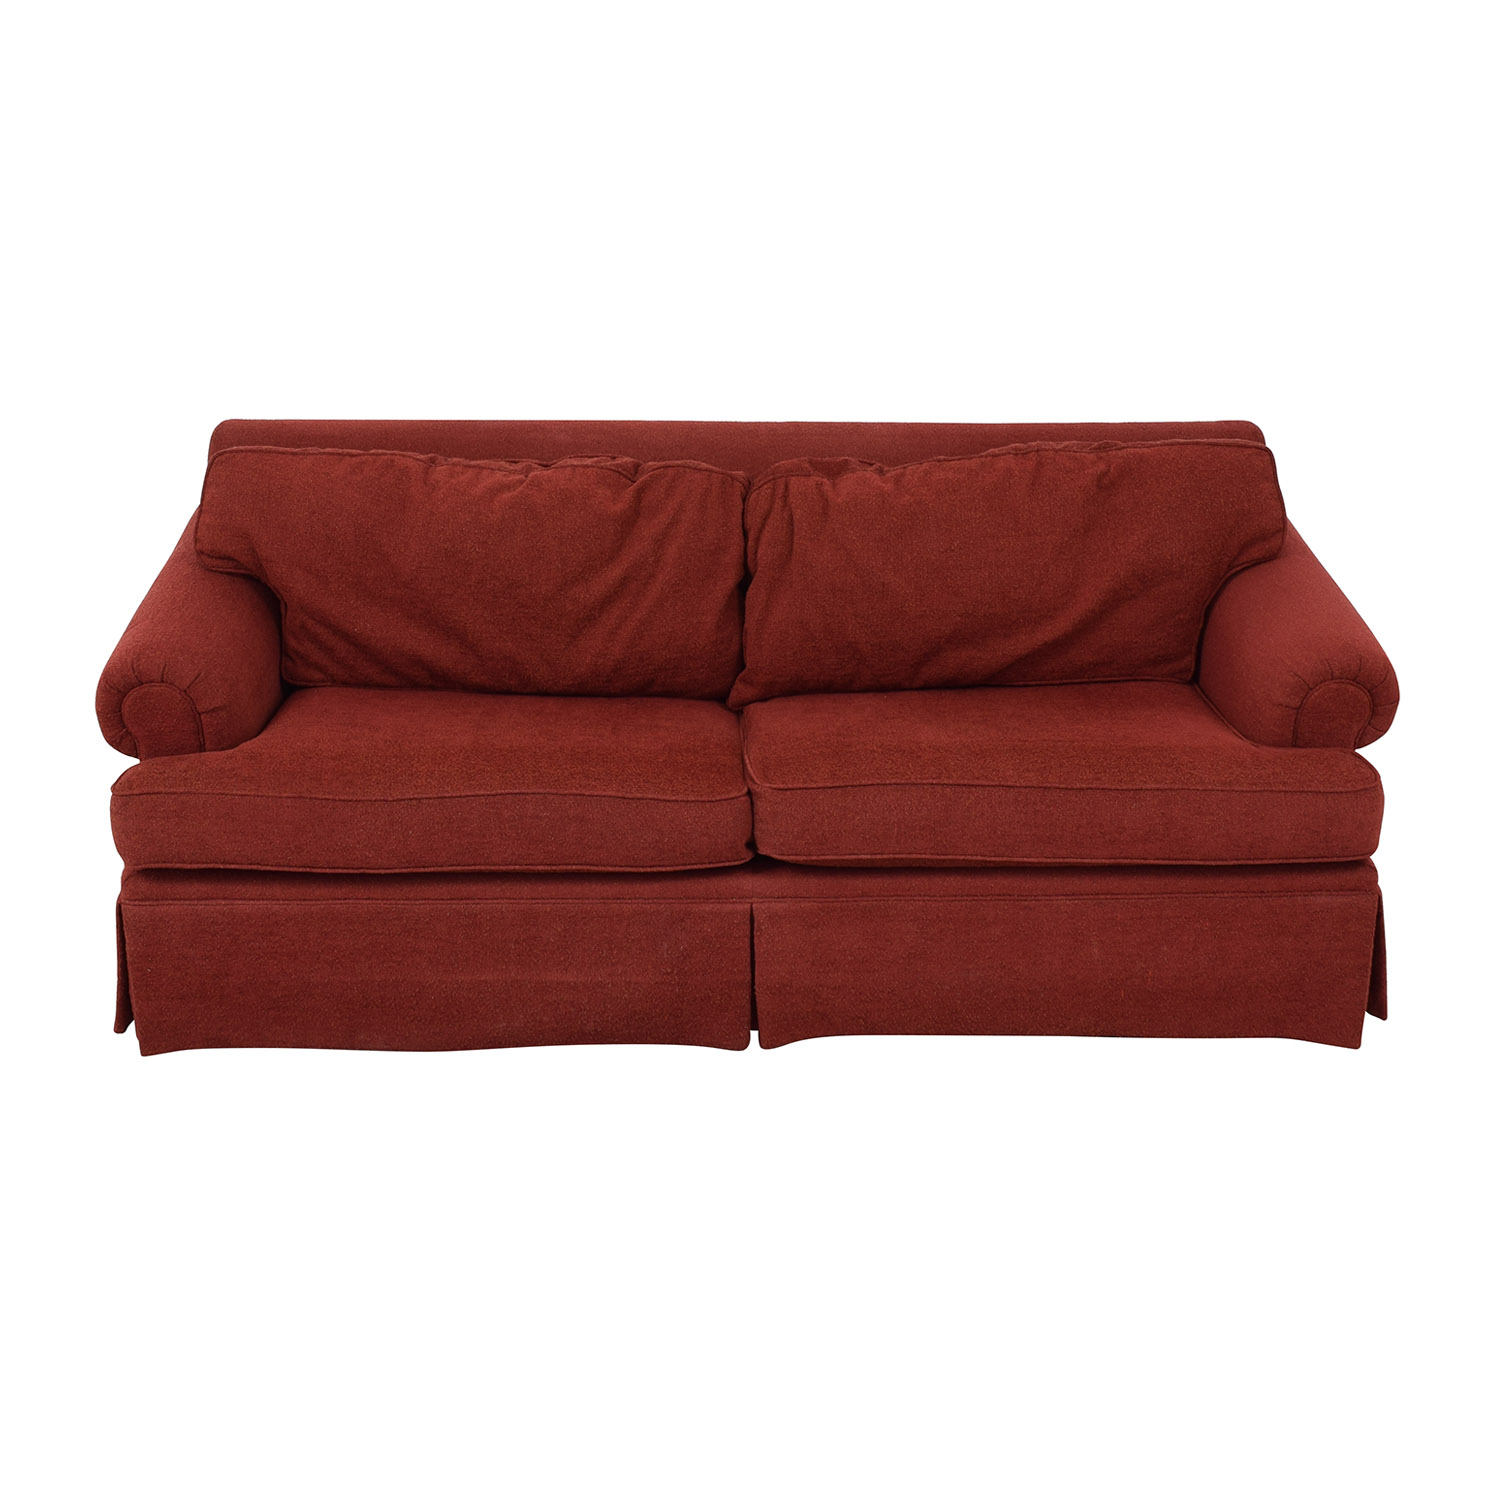 Baker Furniture Baker Furniture Milling Road Red Queen Pull Out Sofa used